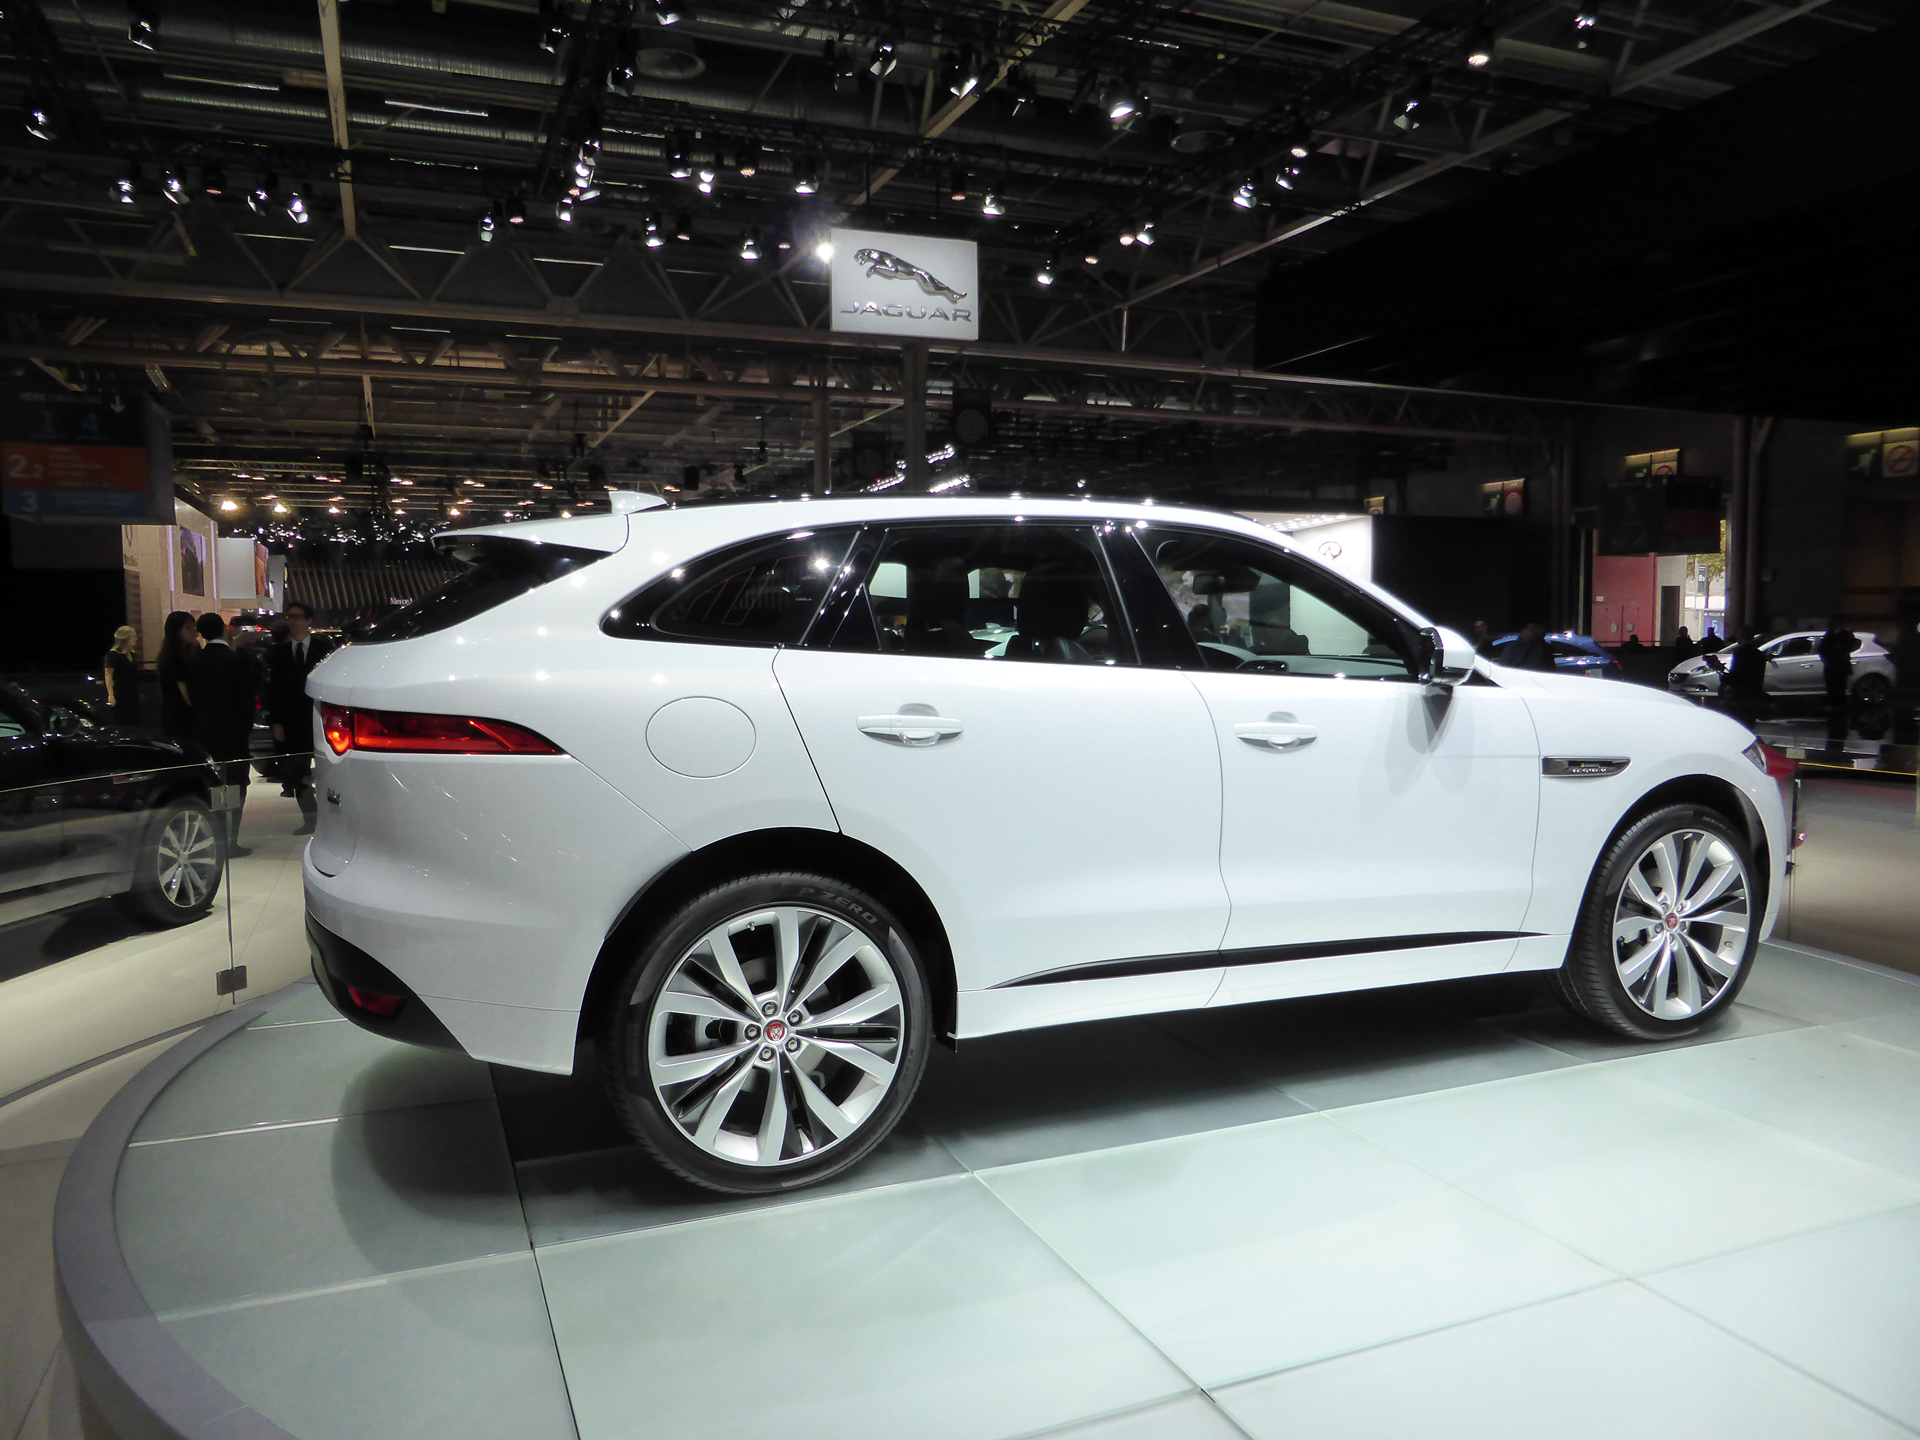 Jaguar F-PACE - profil - side-face - 2016 - Mondial Auto - photo ELJ DM